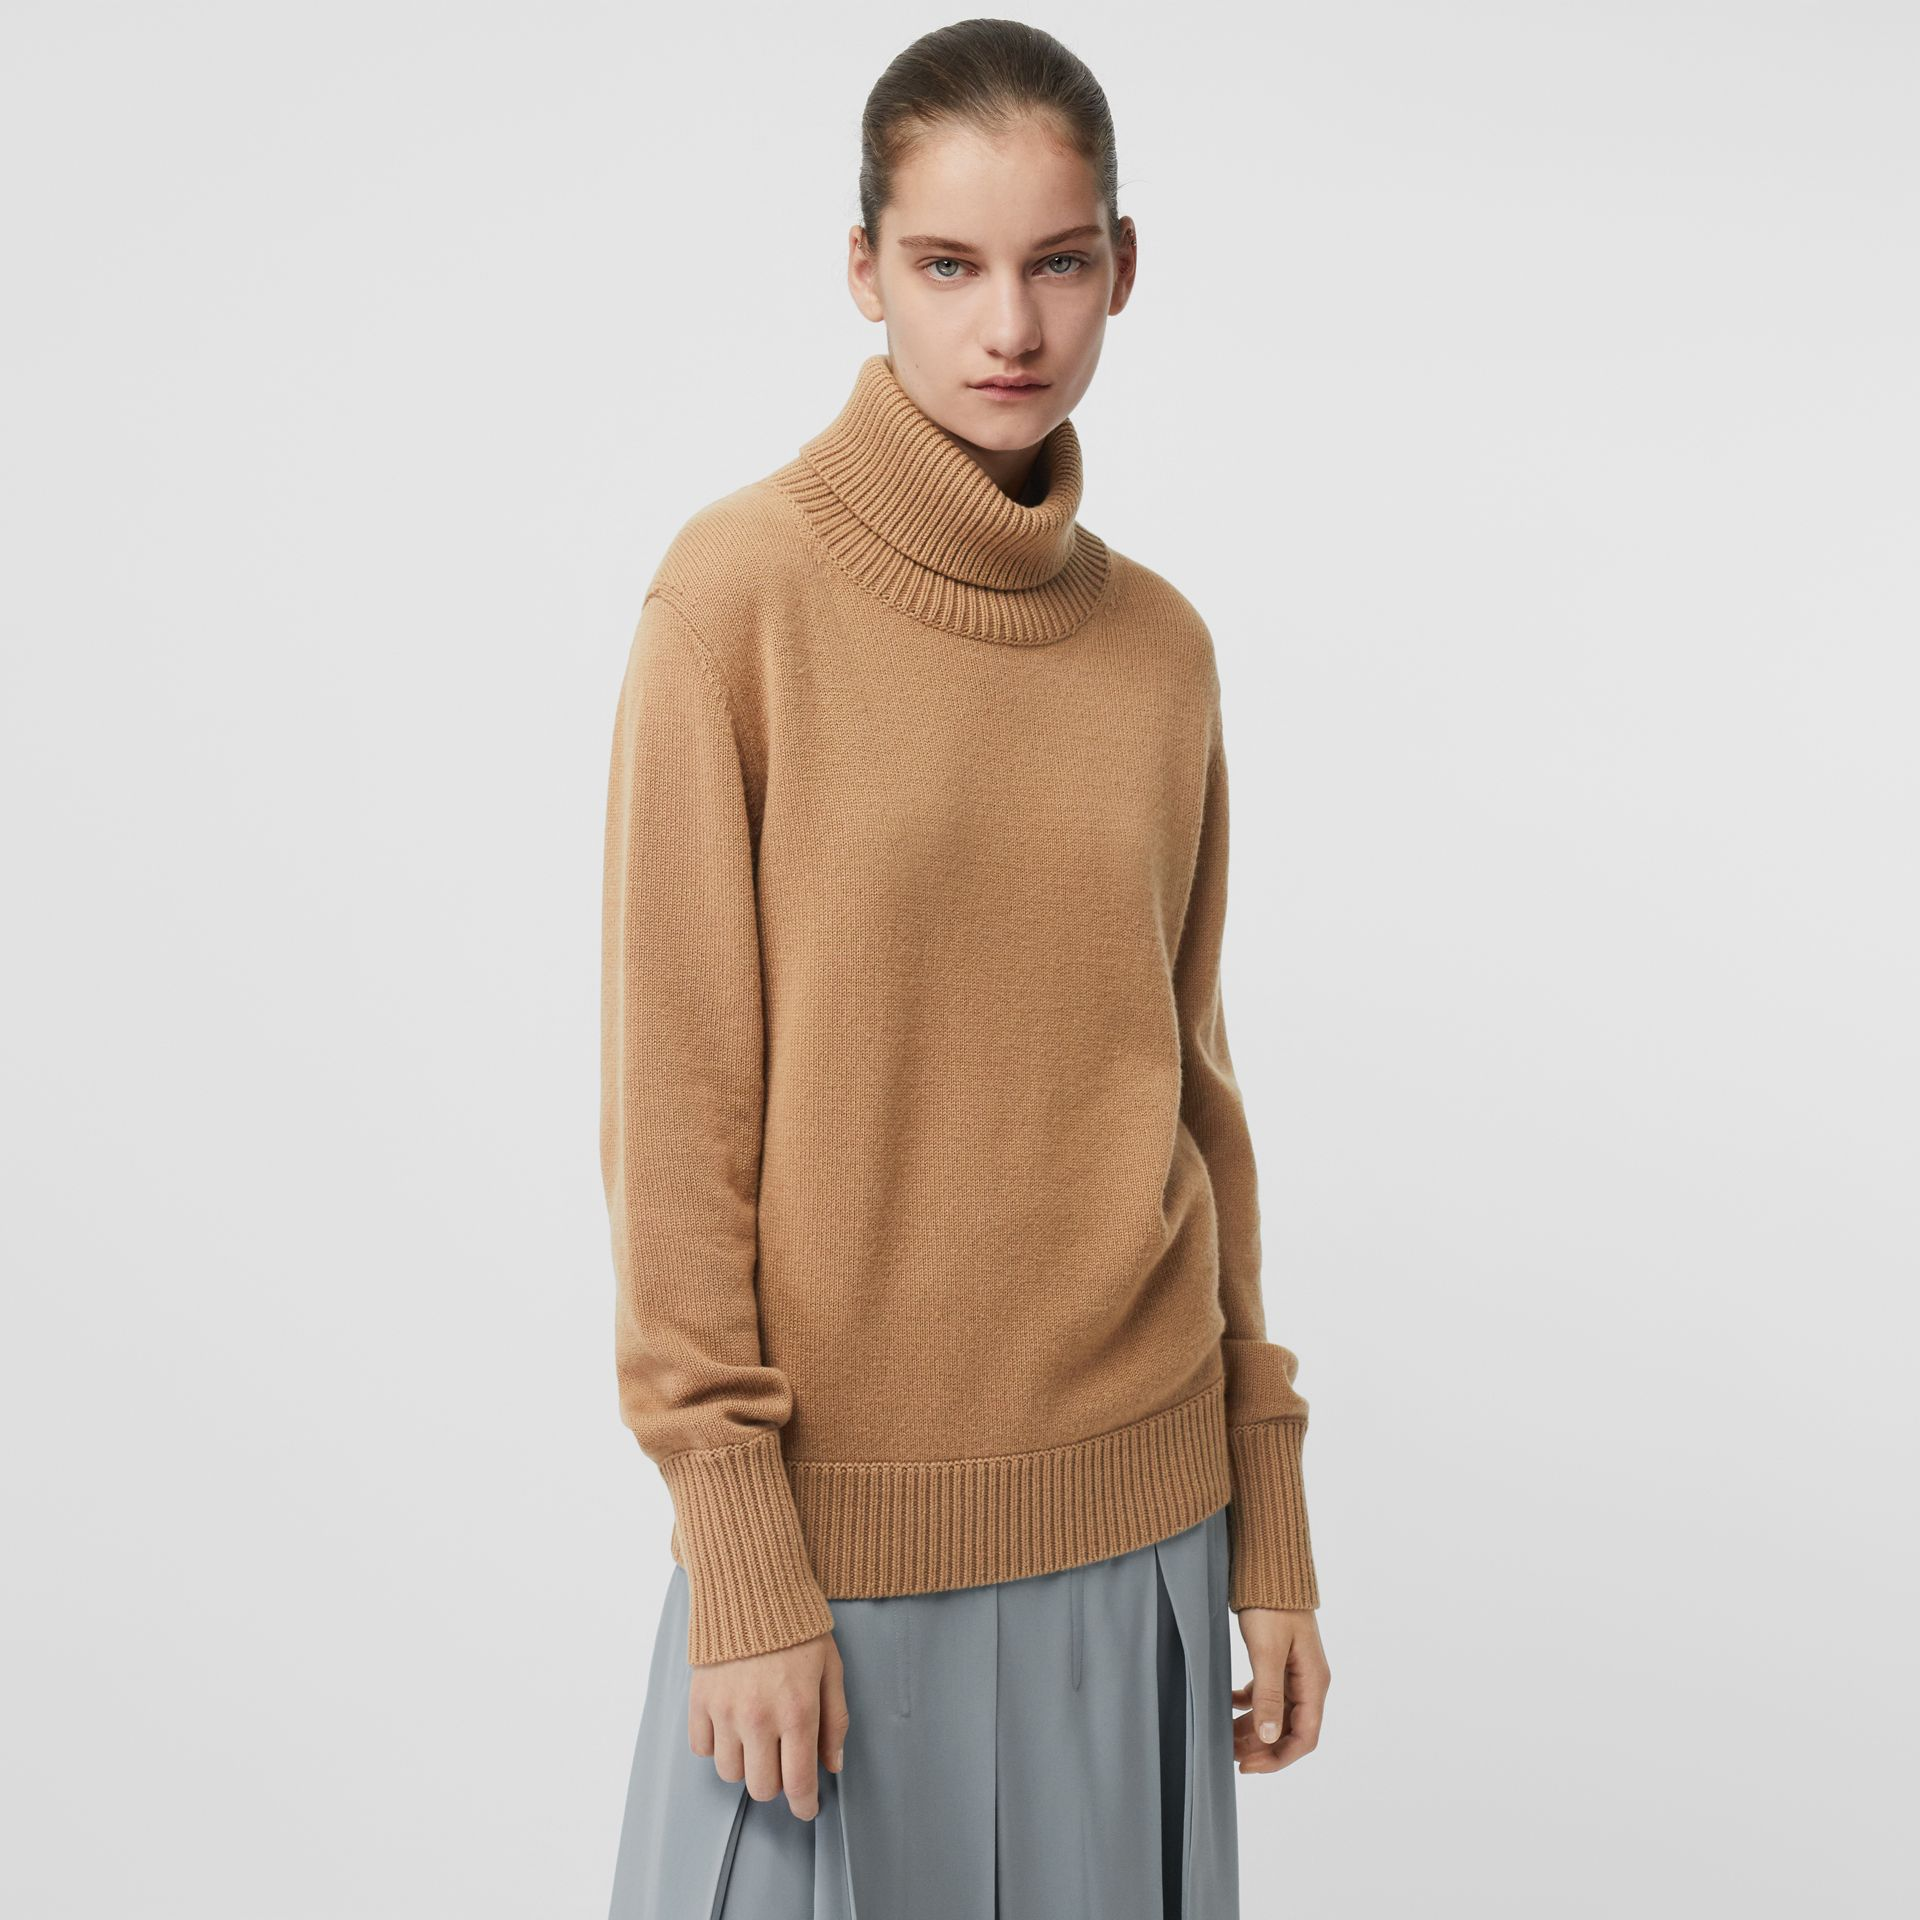 Embroidered Crest Cashmere Roll-neck Sweater in Camel - Women | Burberry United States - gallery image 0